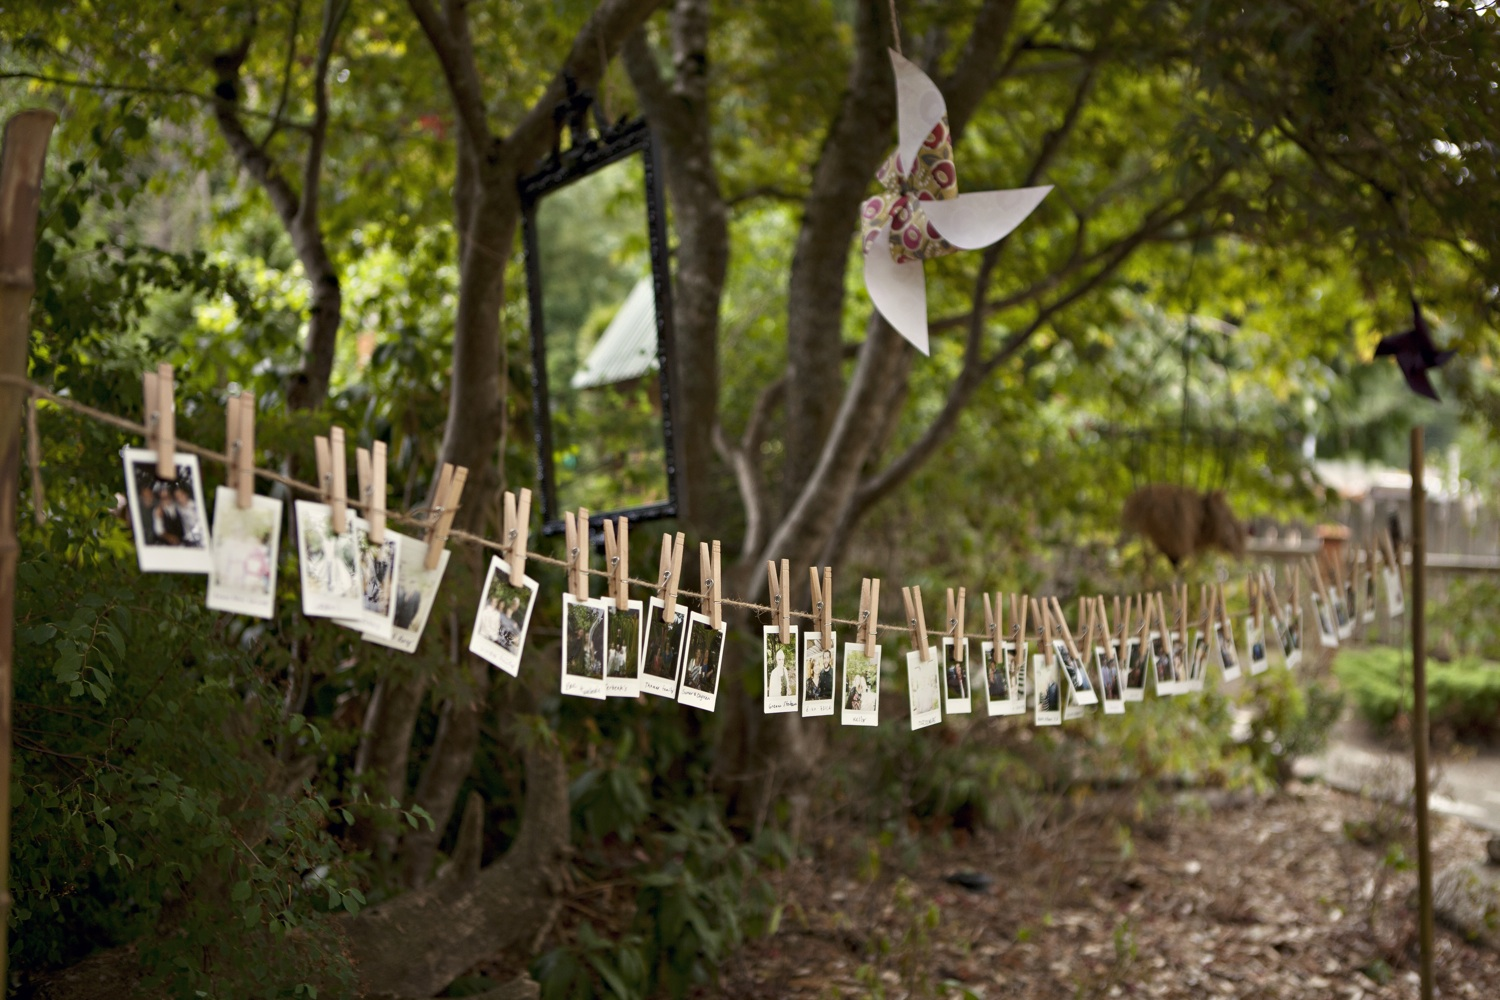 Cute outdoor wedding decoration ideas choice image wedding dress cute outdoor wedding decoration ideas choice image wedding dress cute outdoor wedding decoration ideas image collections junglespirit Images